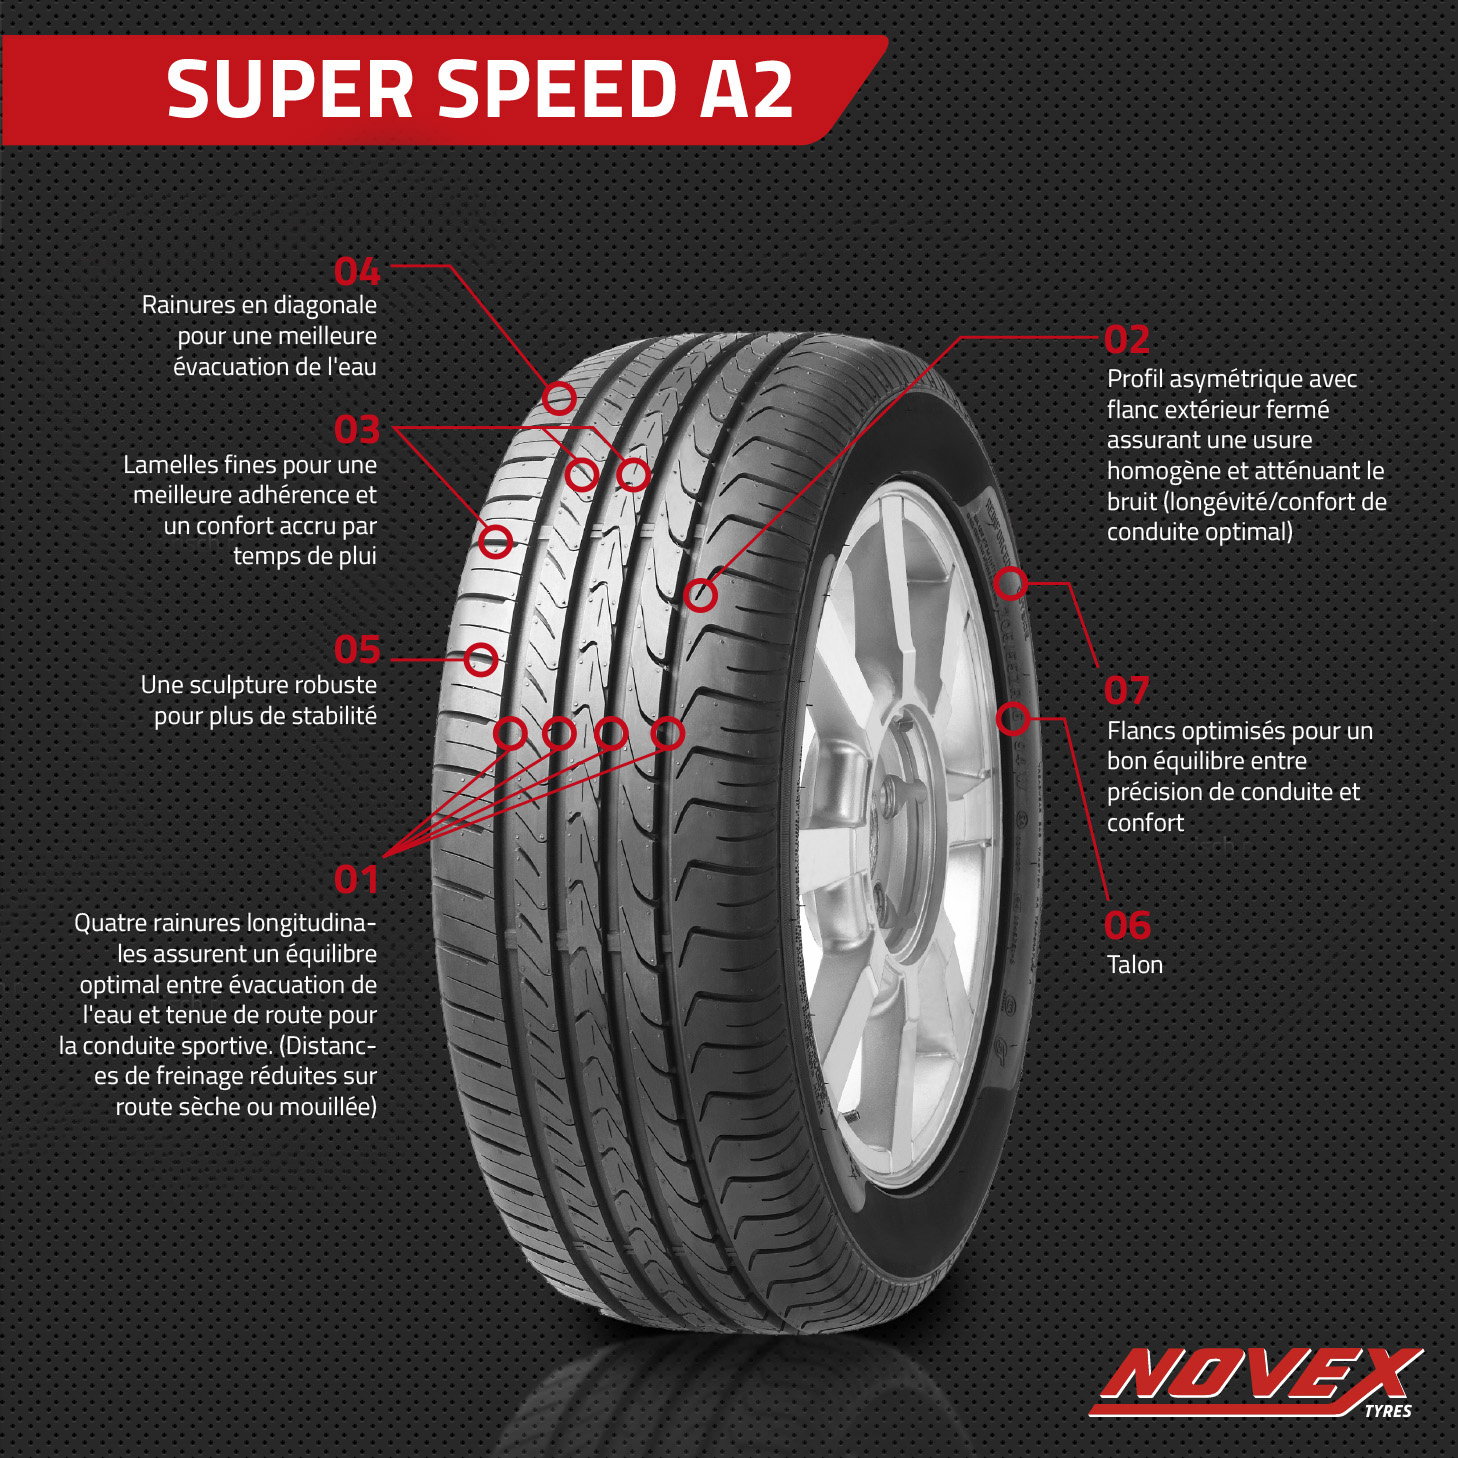 NOVEX Texte Super Speed A2